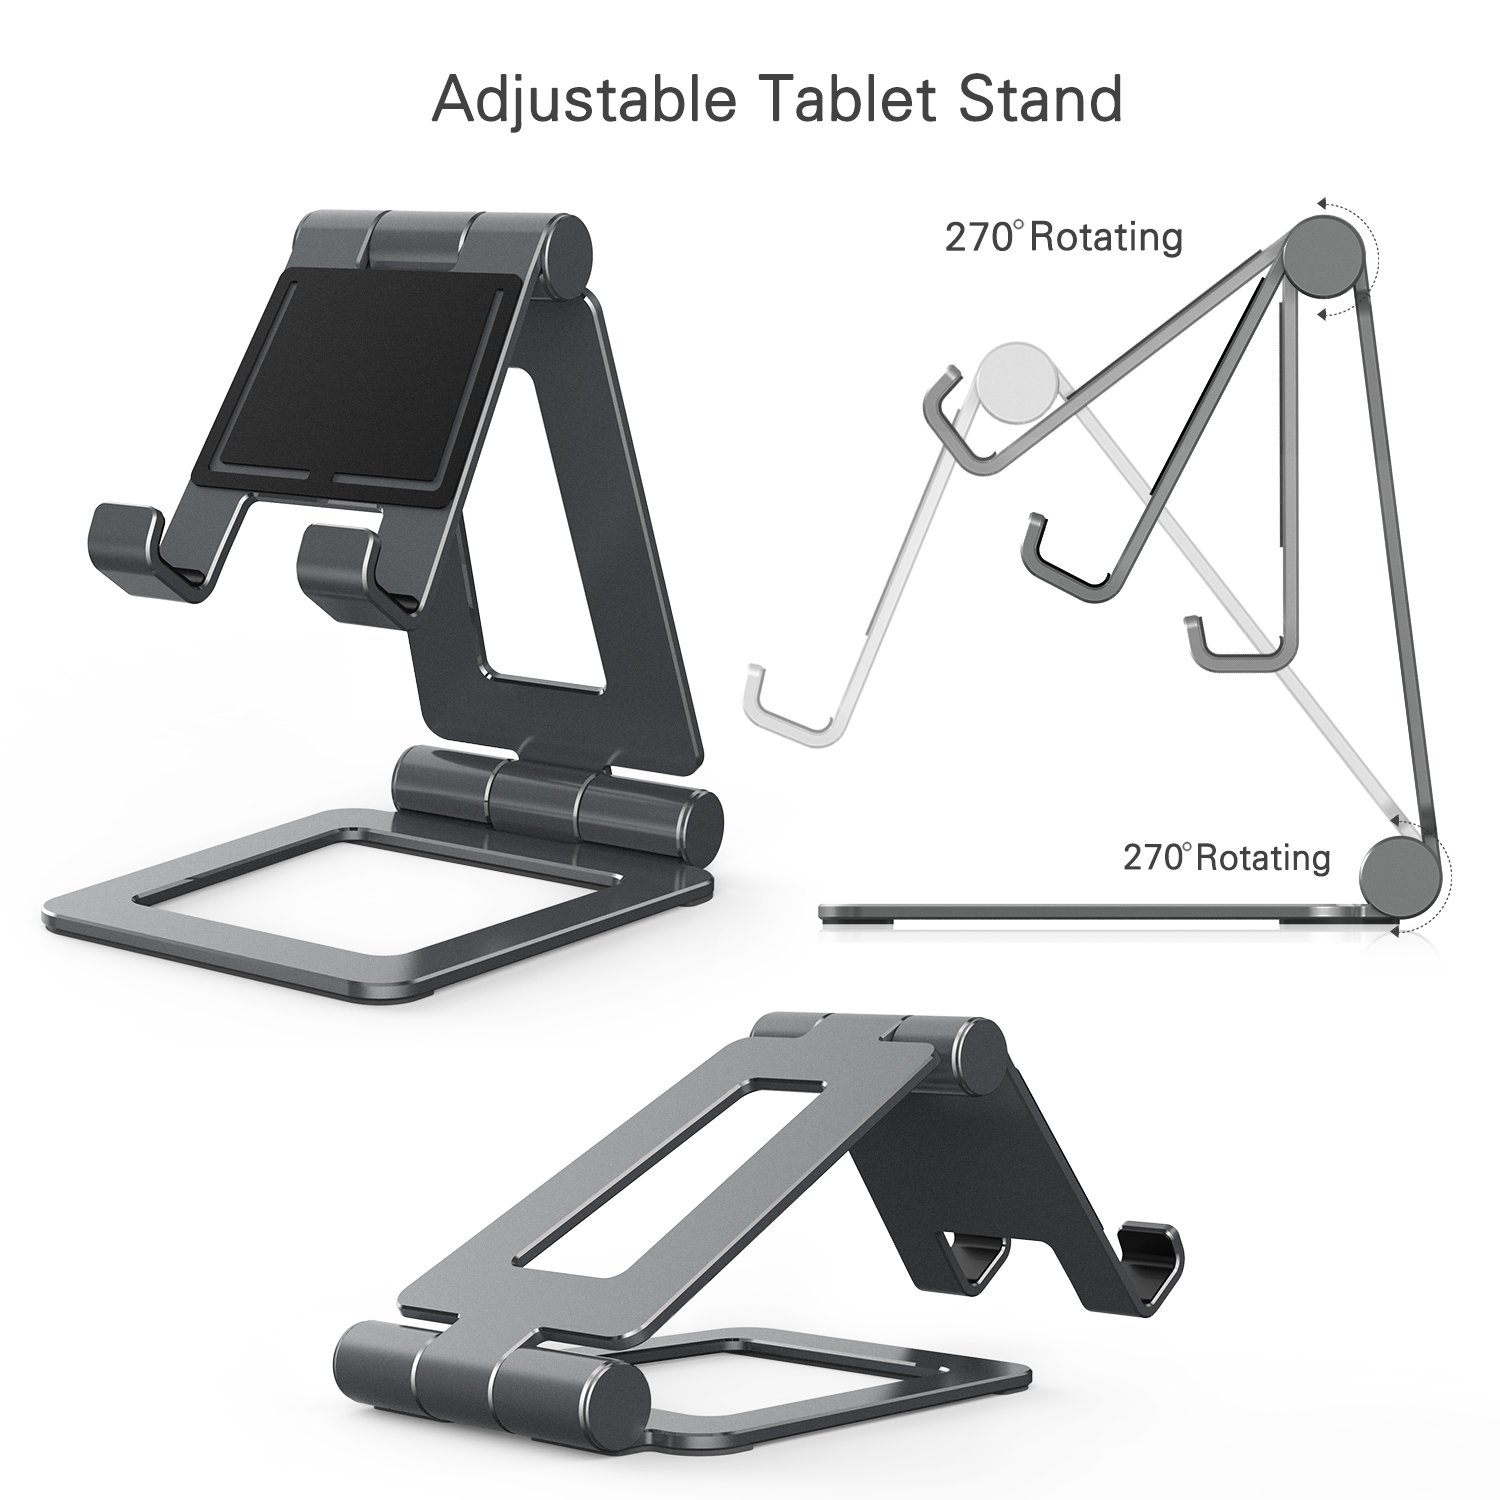 Adjustable iPad Stand, Tablet Stand Holders, Cell Phone Stands, iPhone Stand, Nintendo Switch Stand, iPad Pro Stand, iPad Mini Stands and Holders for Desk (4-13 inch) by Hi-Tech Wireless (Image #4)